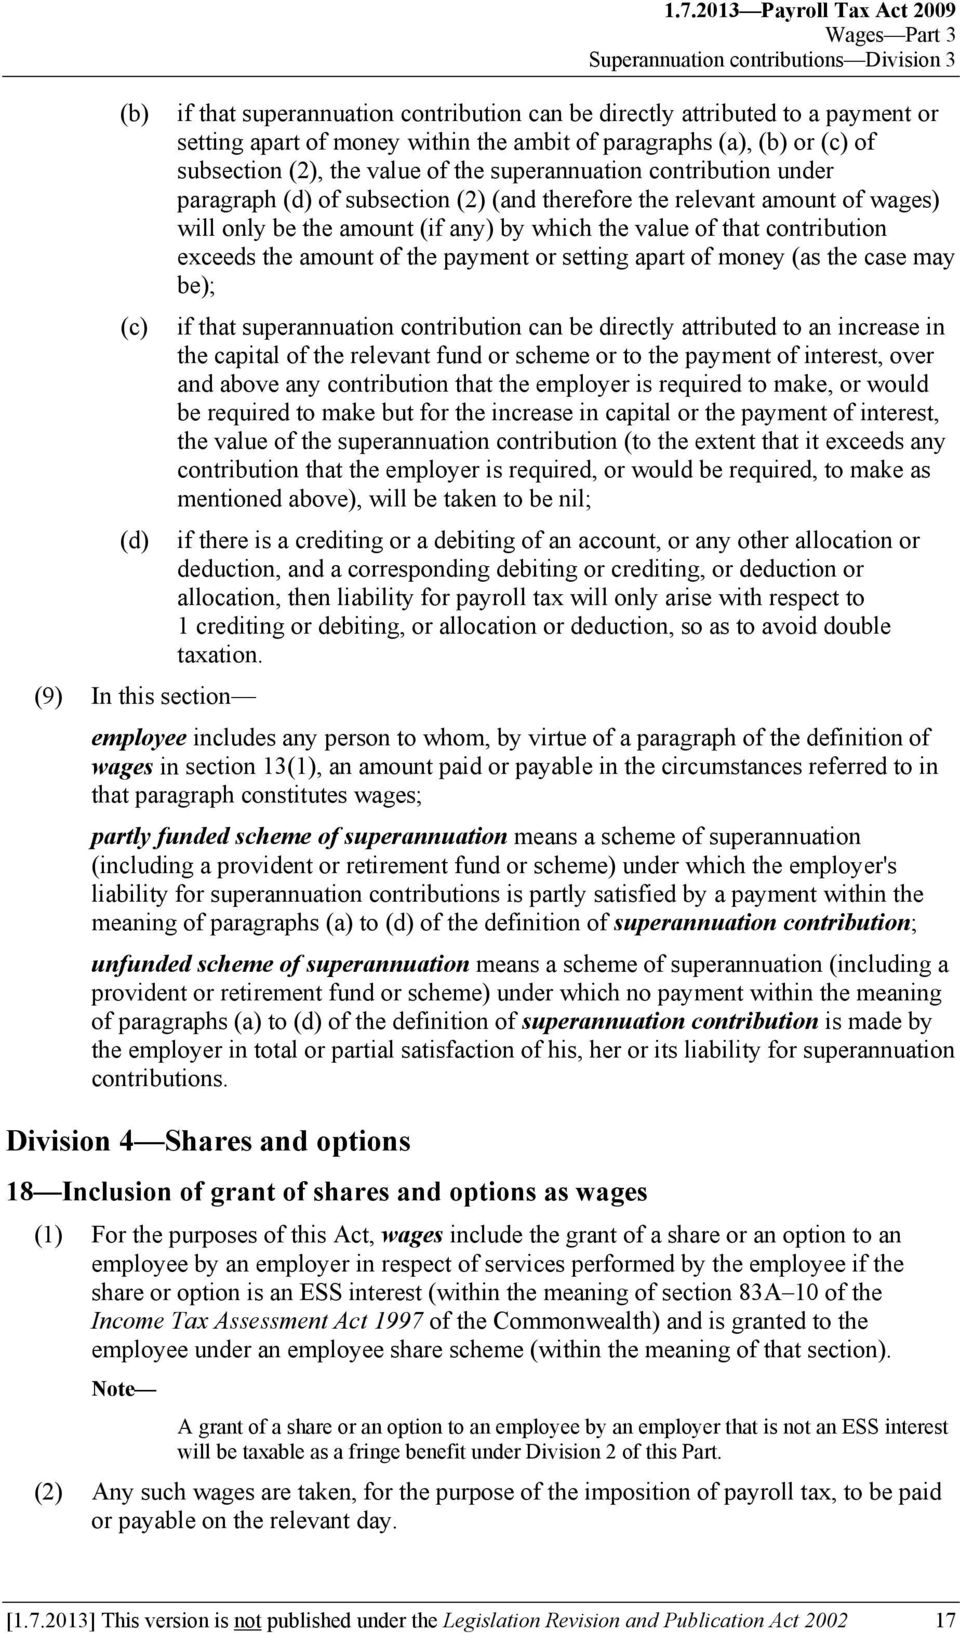 of paragraphs (a), or (c) of subsection (2), the value of the superannuation contribution under paragraph (d) of subsection (2) (and therefore the relevant amount of wages) will only be the amount